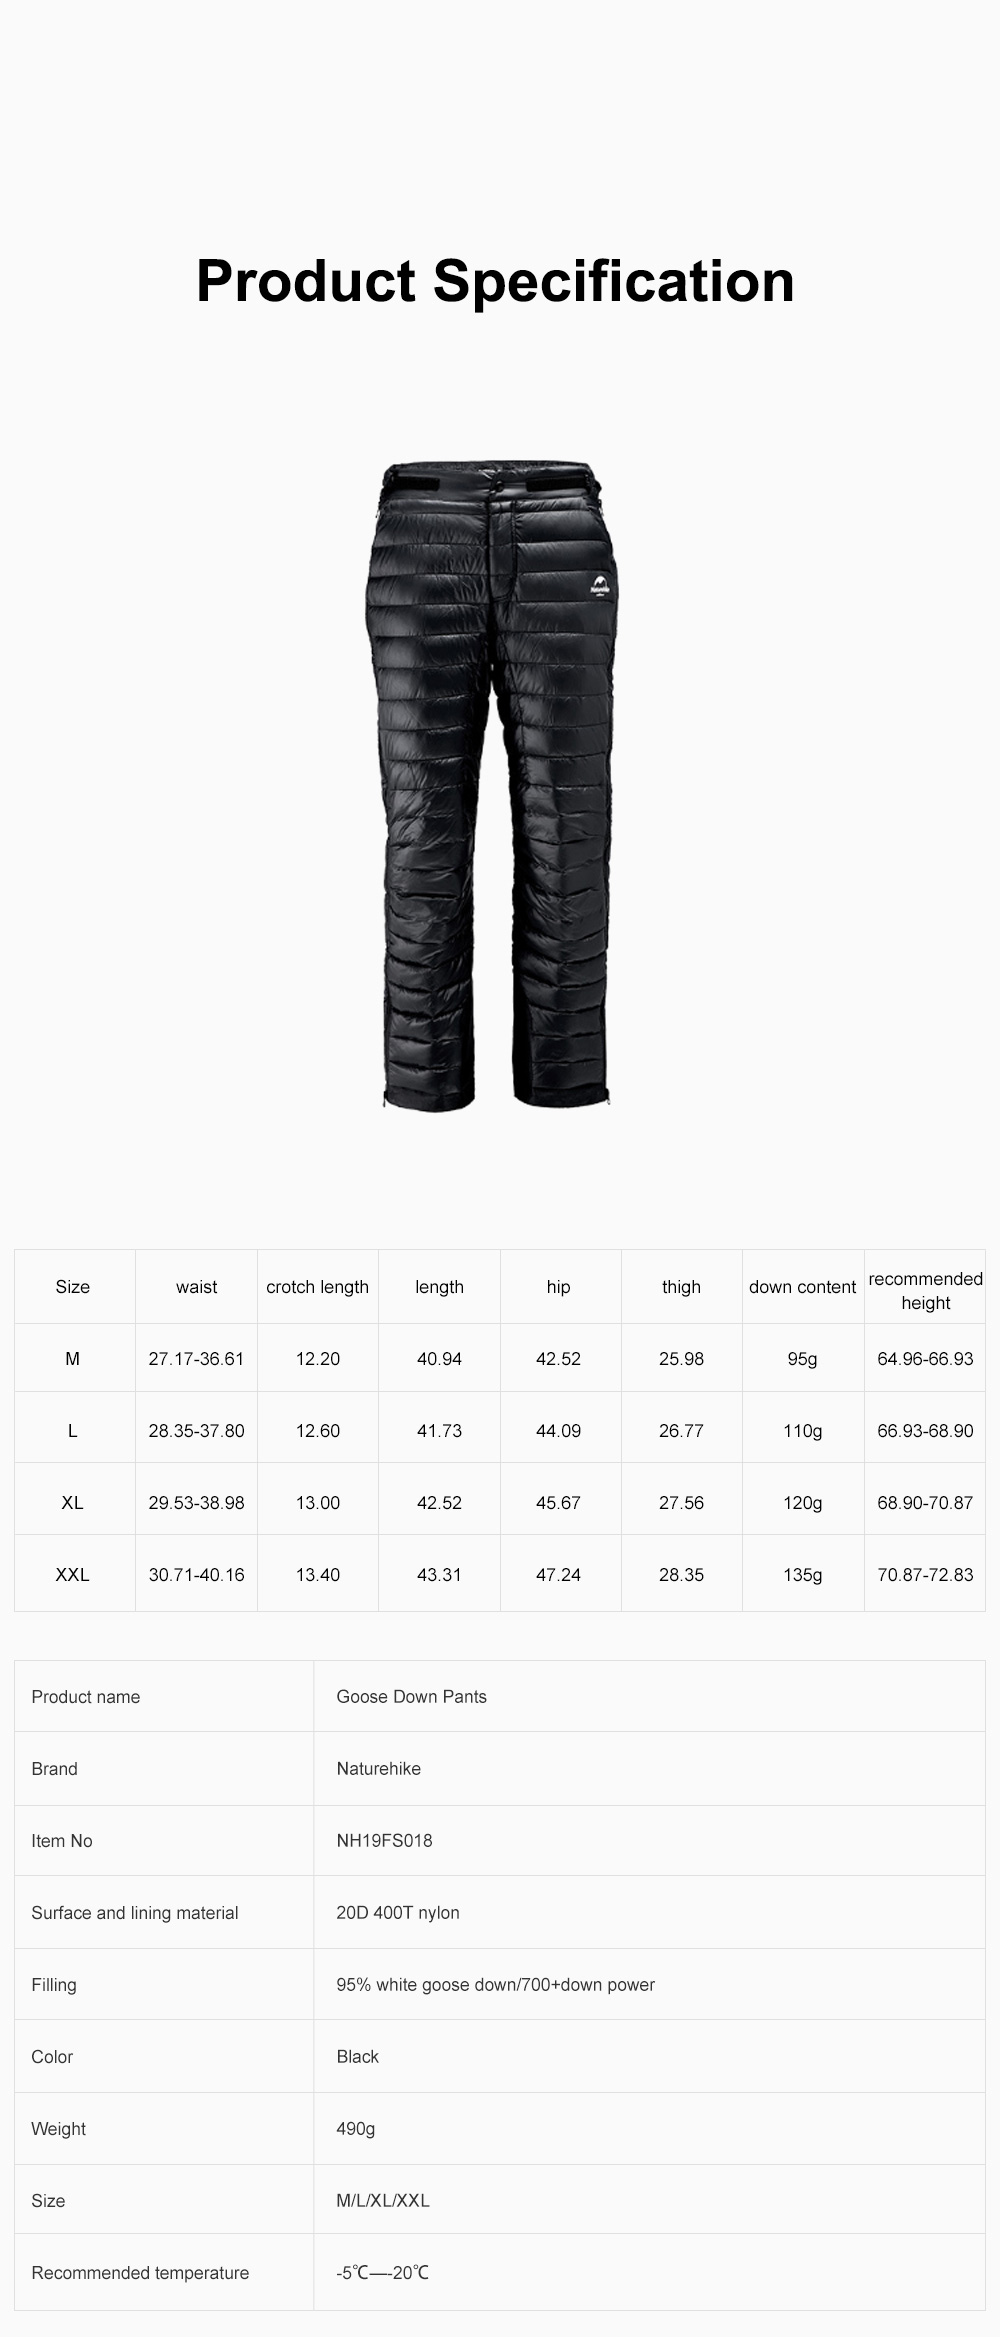 NH 95% Goose Down Pants Windproof and Water-Resistant Insulated Snow Trousers for Winter Outdoor Sport 6